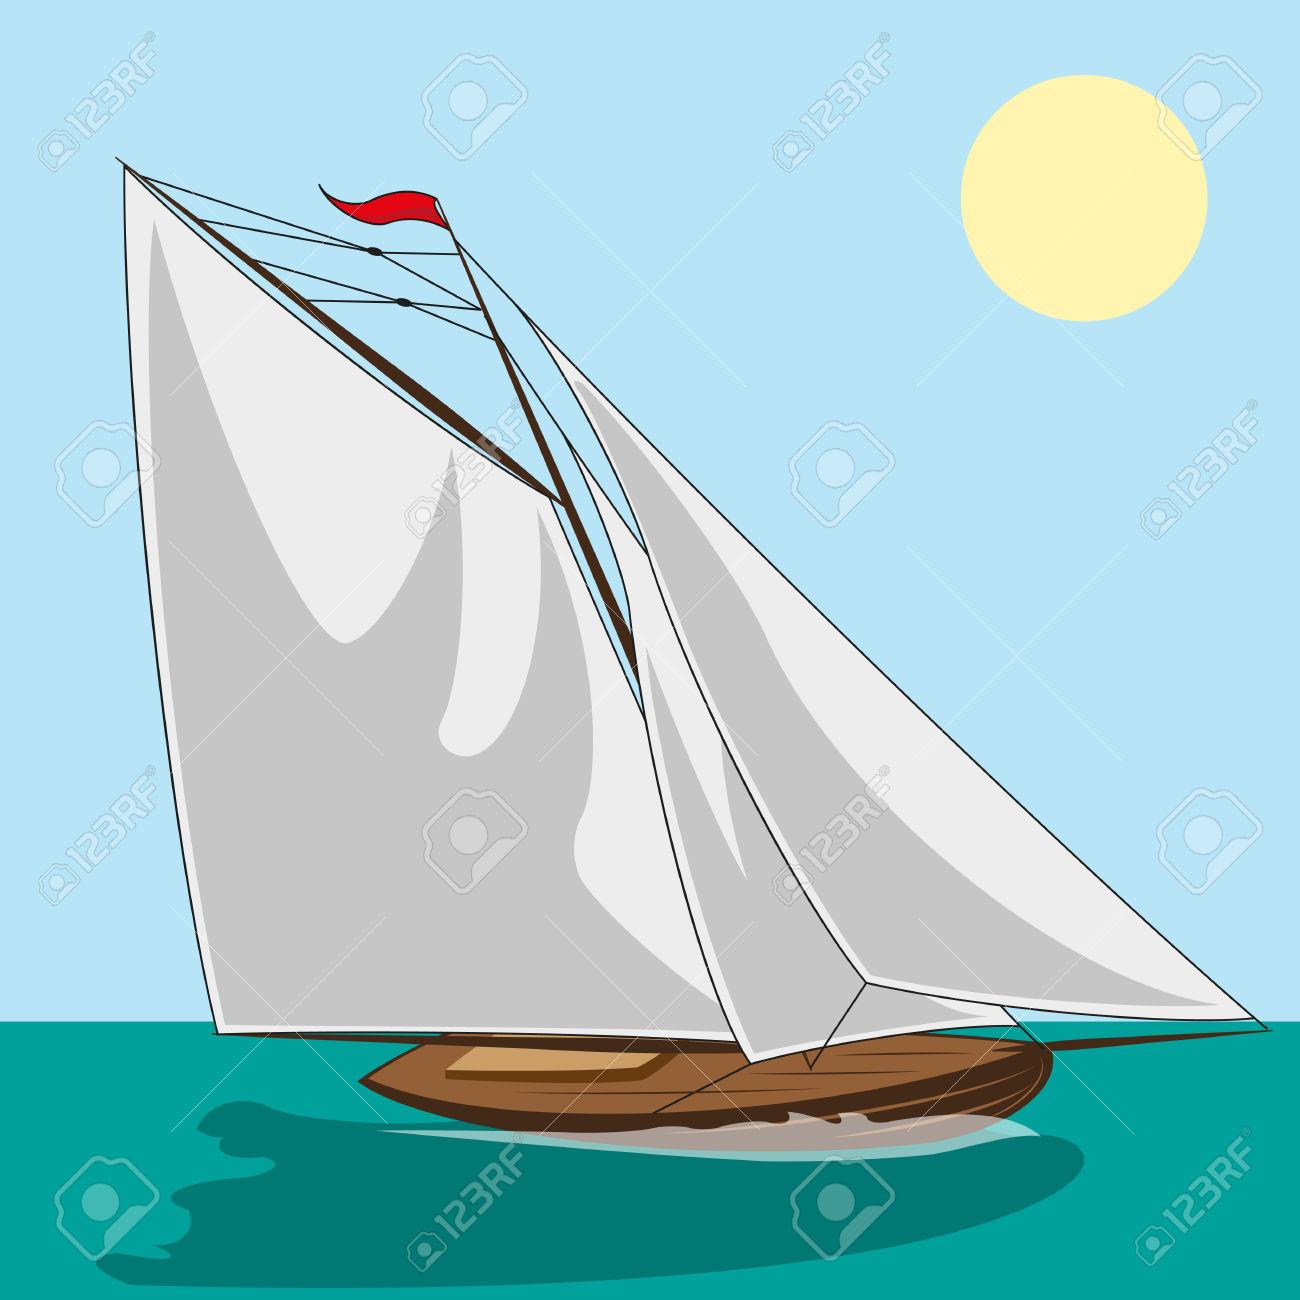 Yacht With White Sails. Illustration Clip Art Royalty Free.